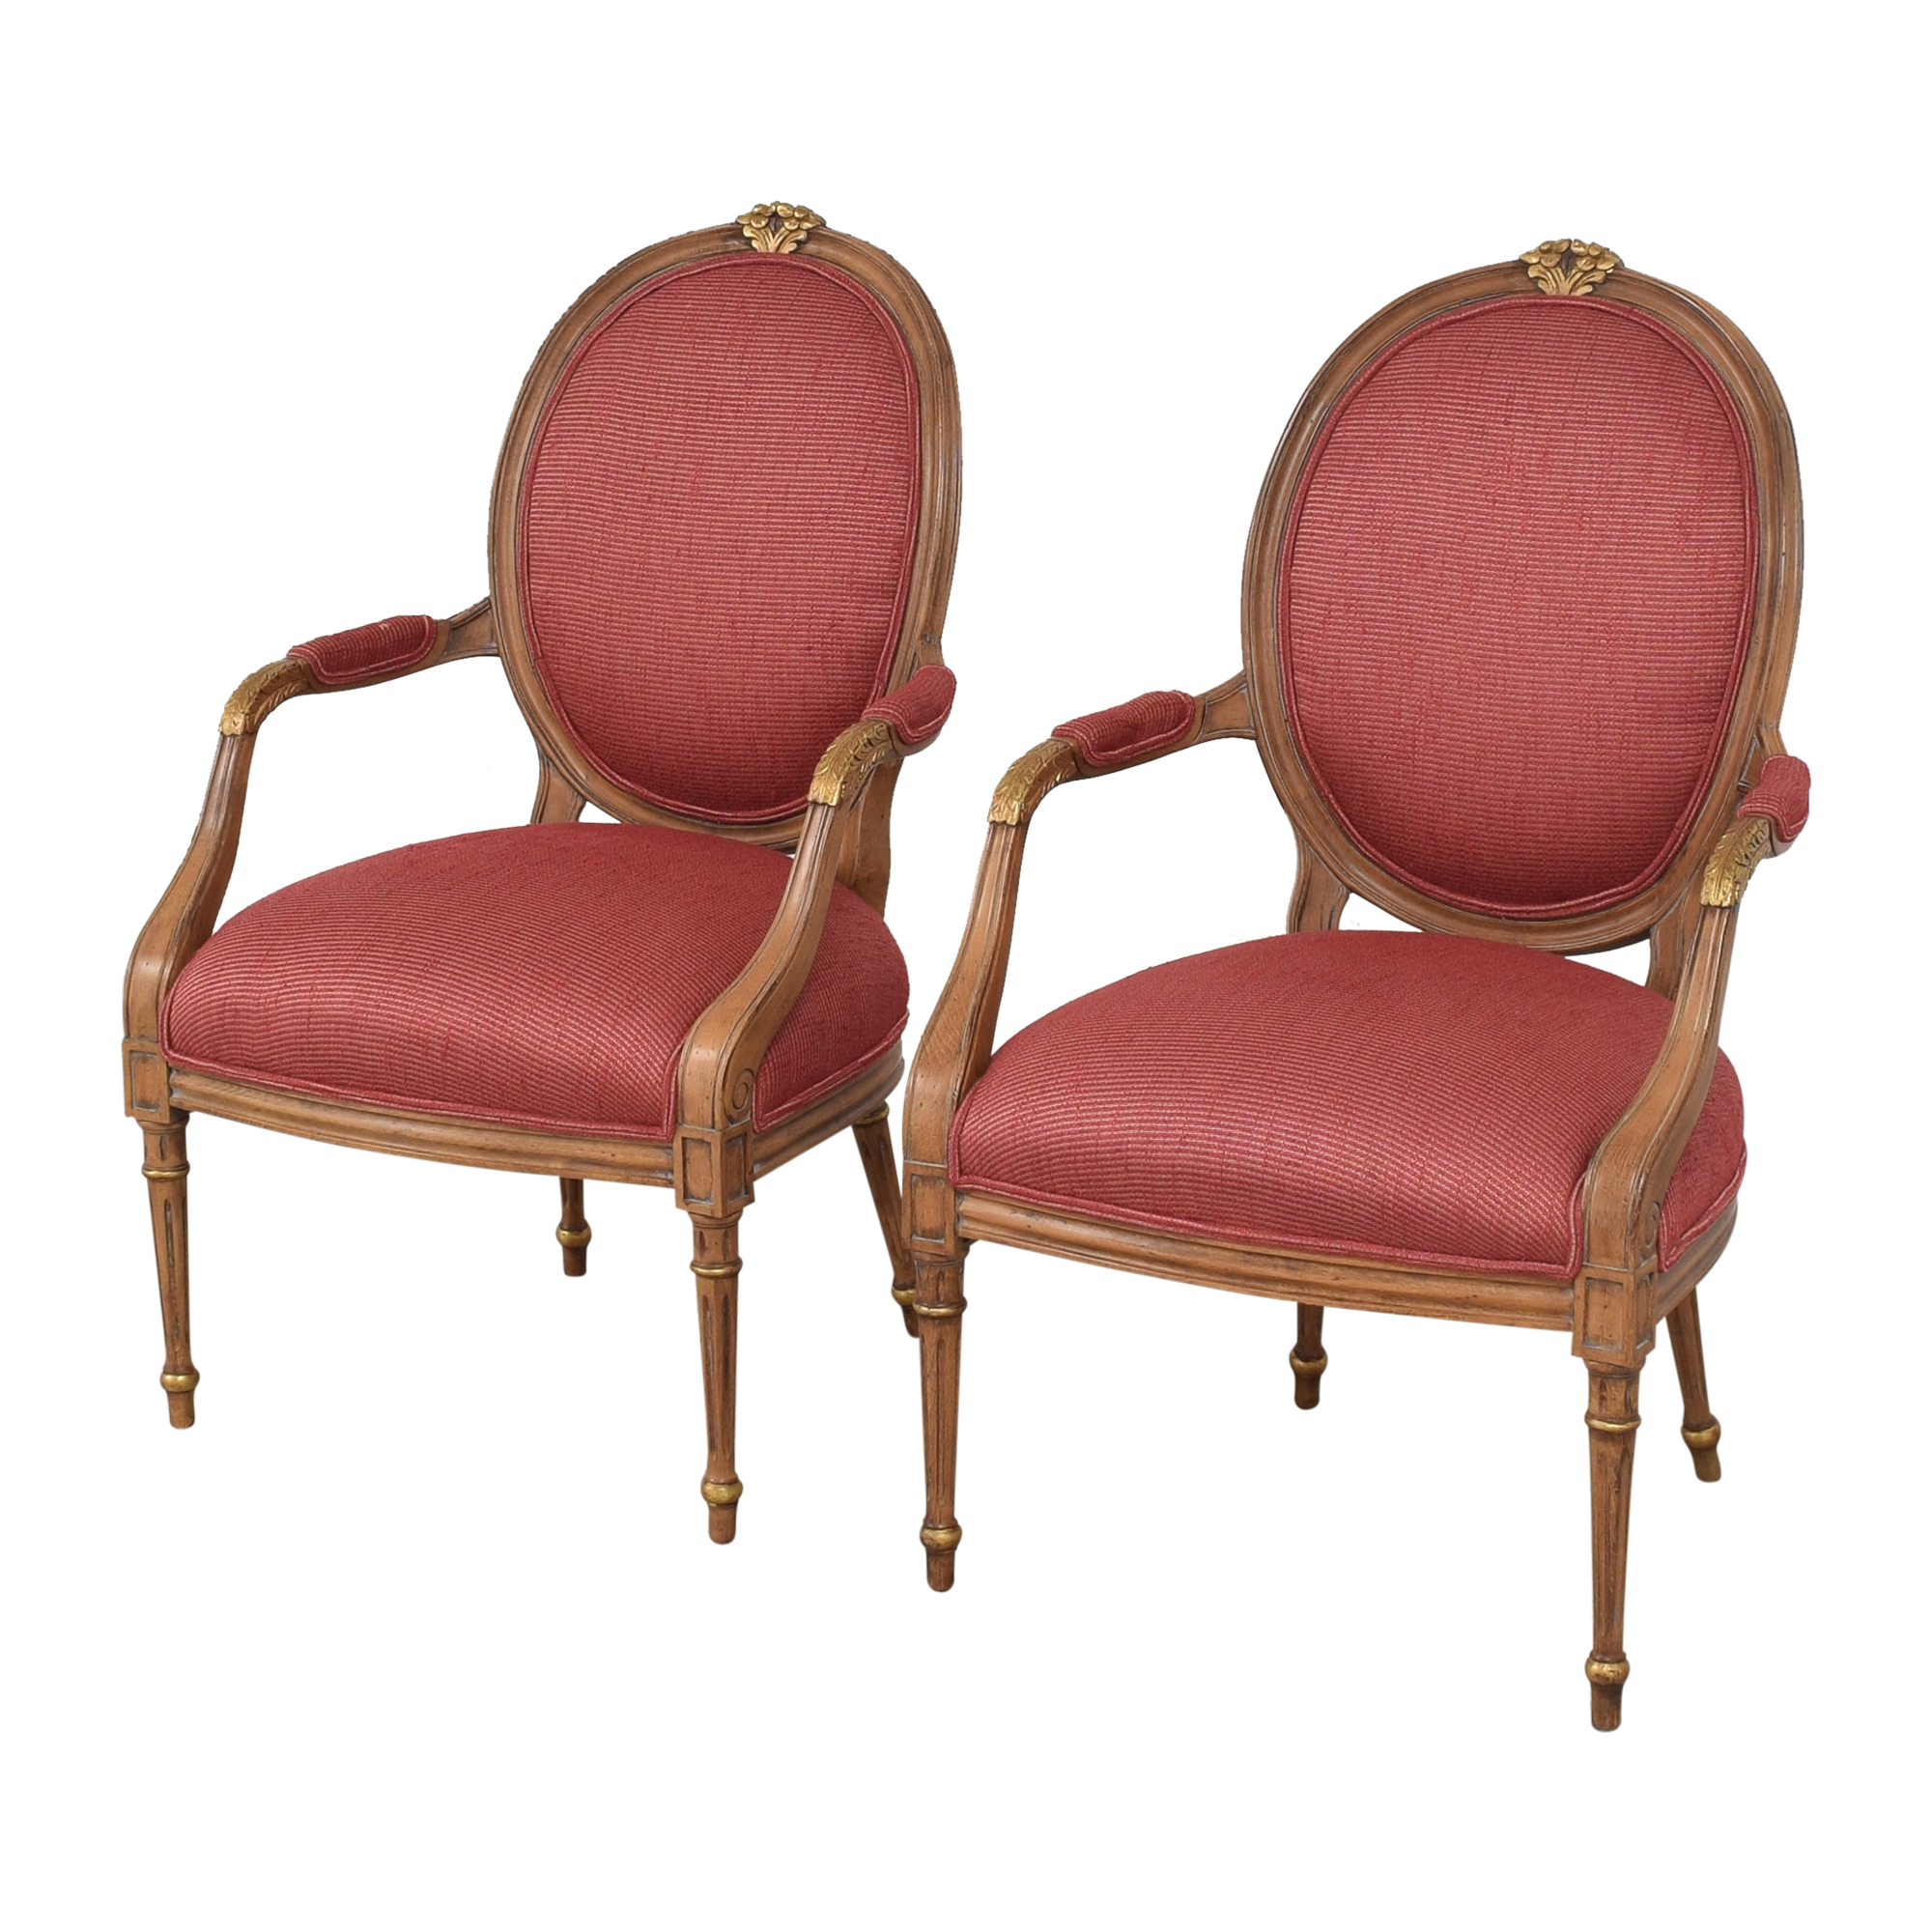 French Regency Upholstered Arm Chairs nj